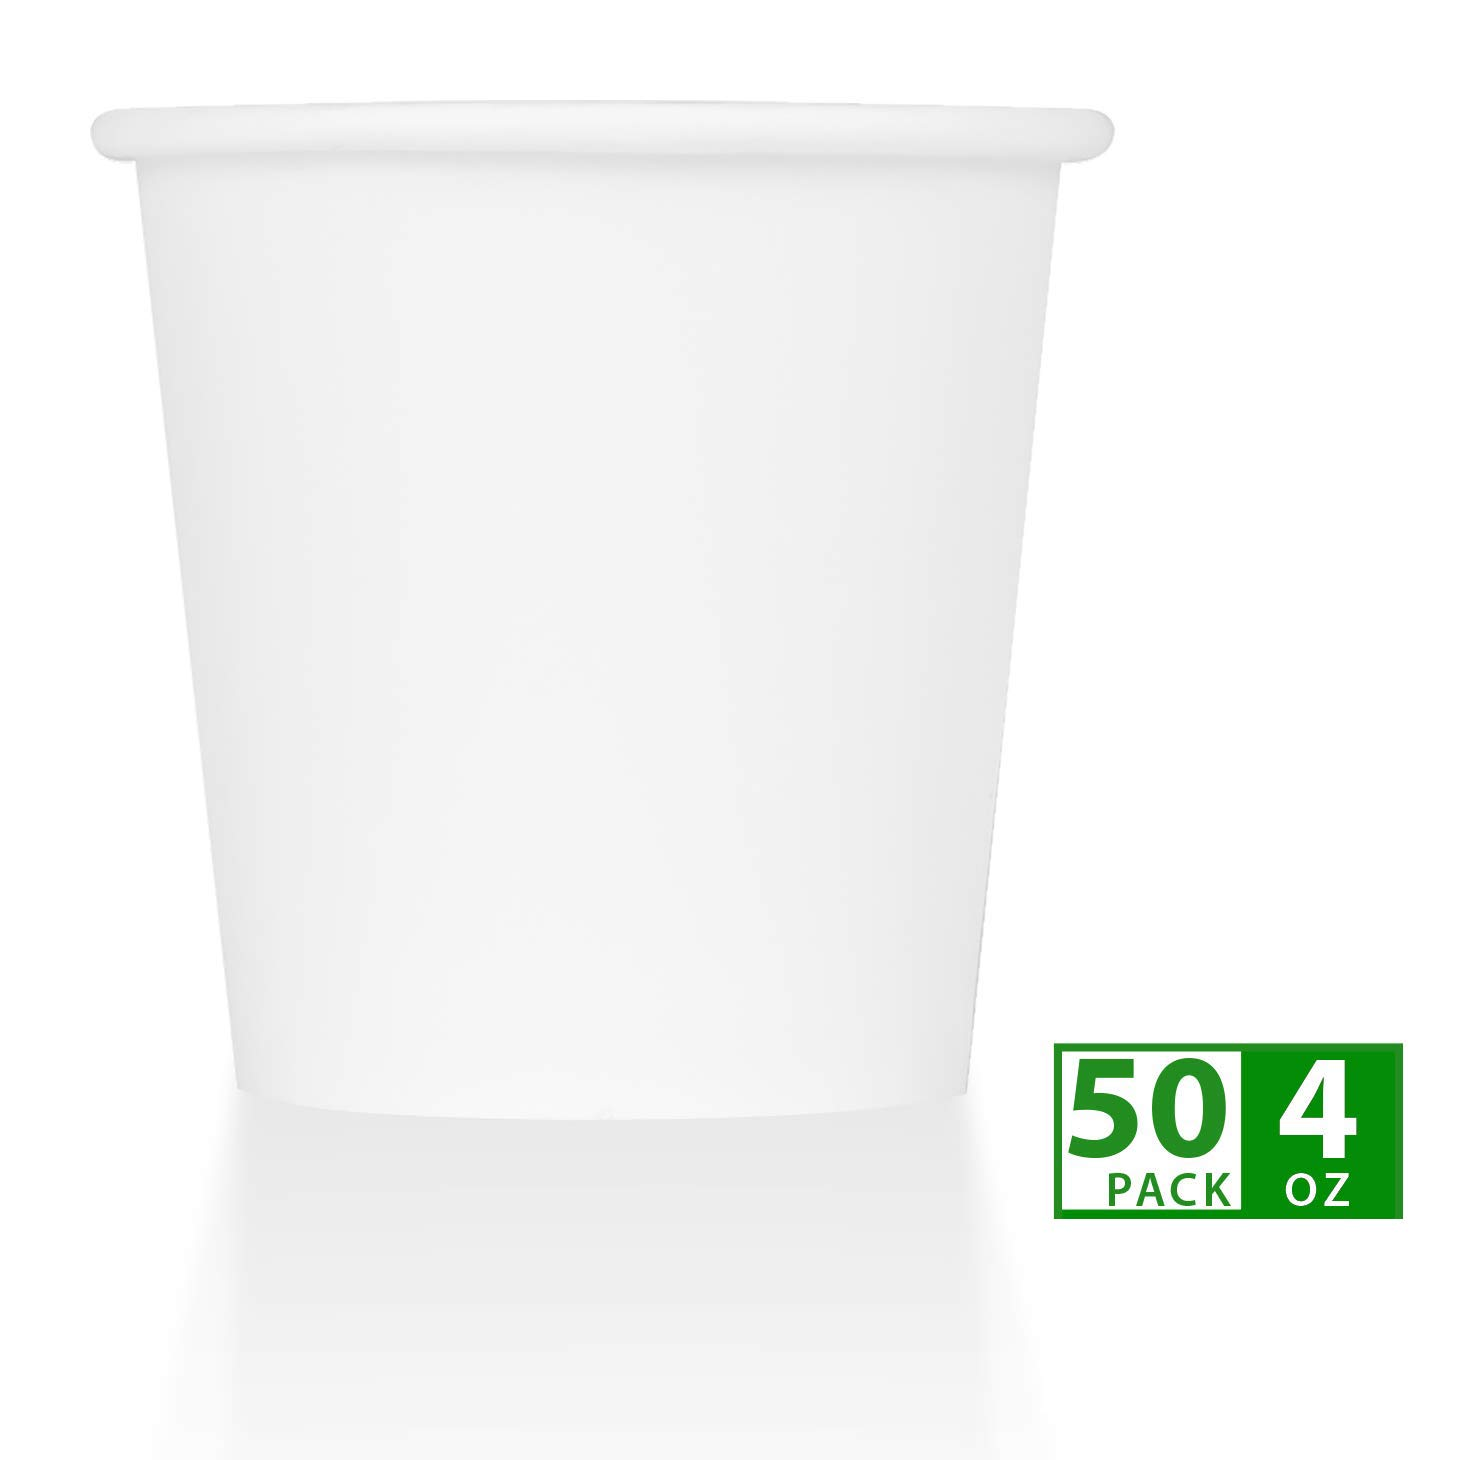 ZenCo Compostable Disposable Paper Cups - 50 Pack 4oz Hot/Cold Beverage Disposable Drinking Cup White - Eco Friendly Cups for Office, Catering, Picnics or Birthdays (50 Count, 4 Ounce)